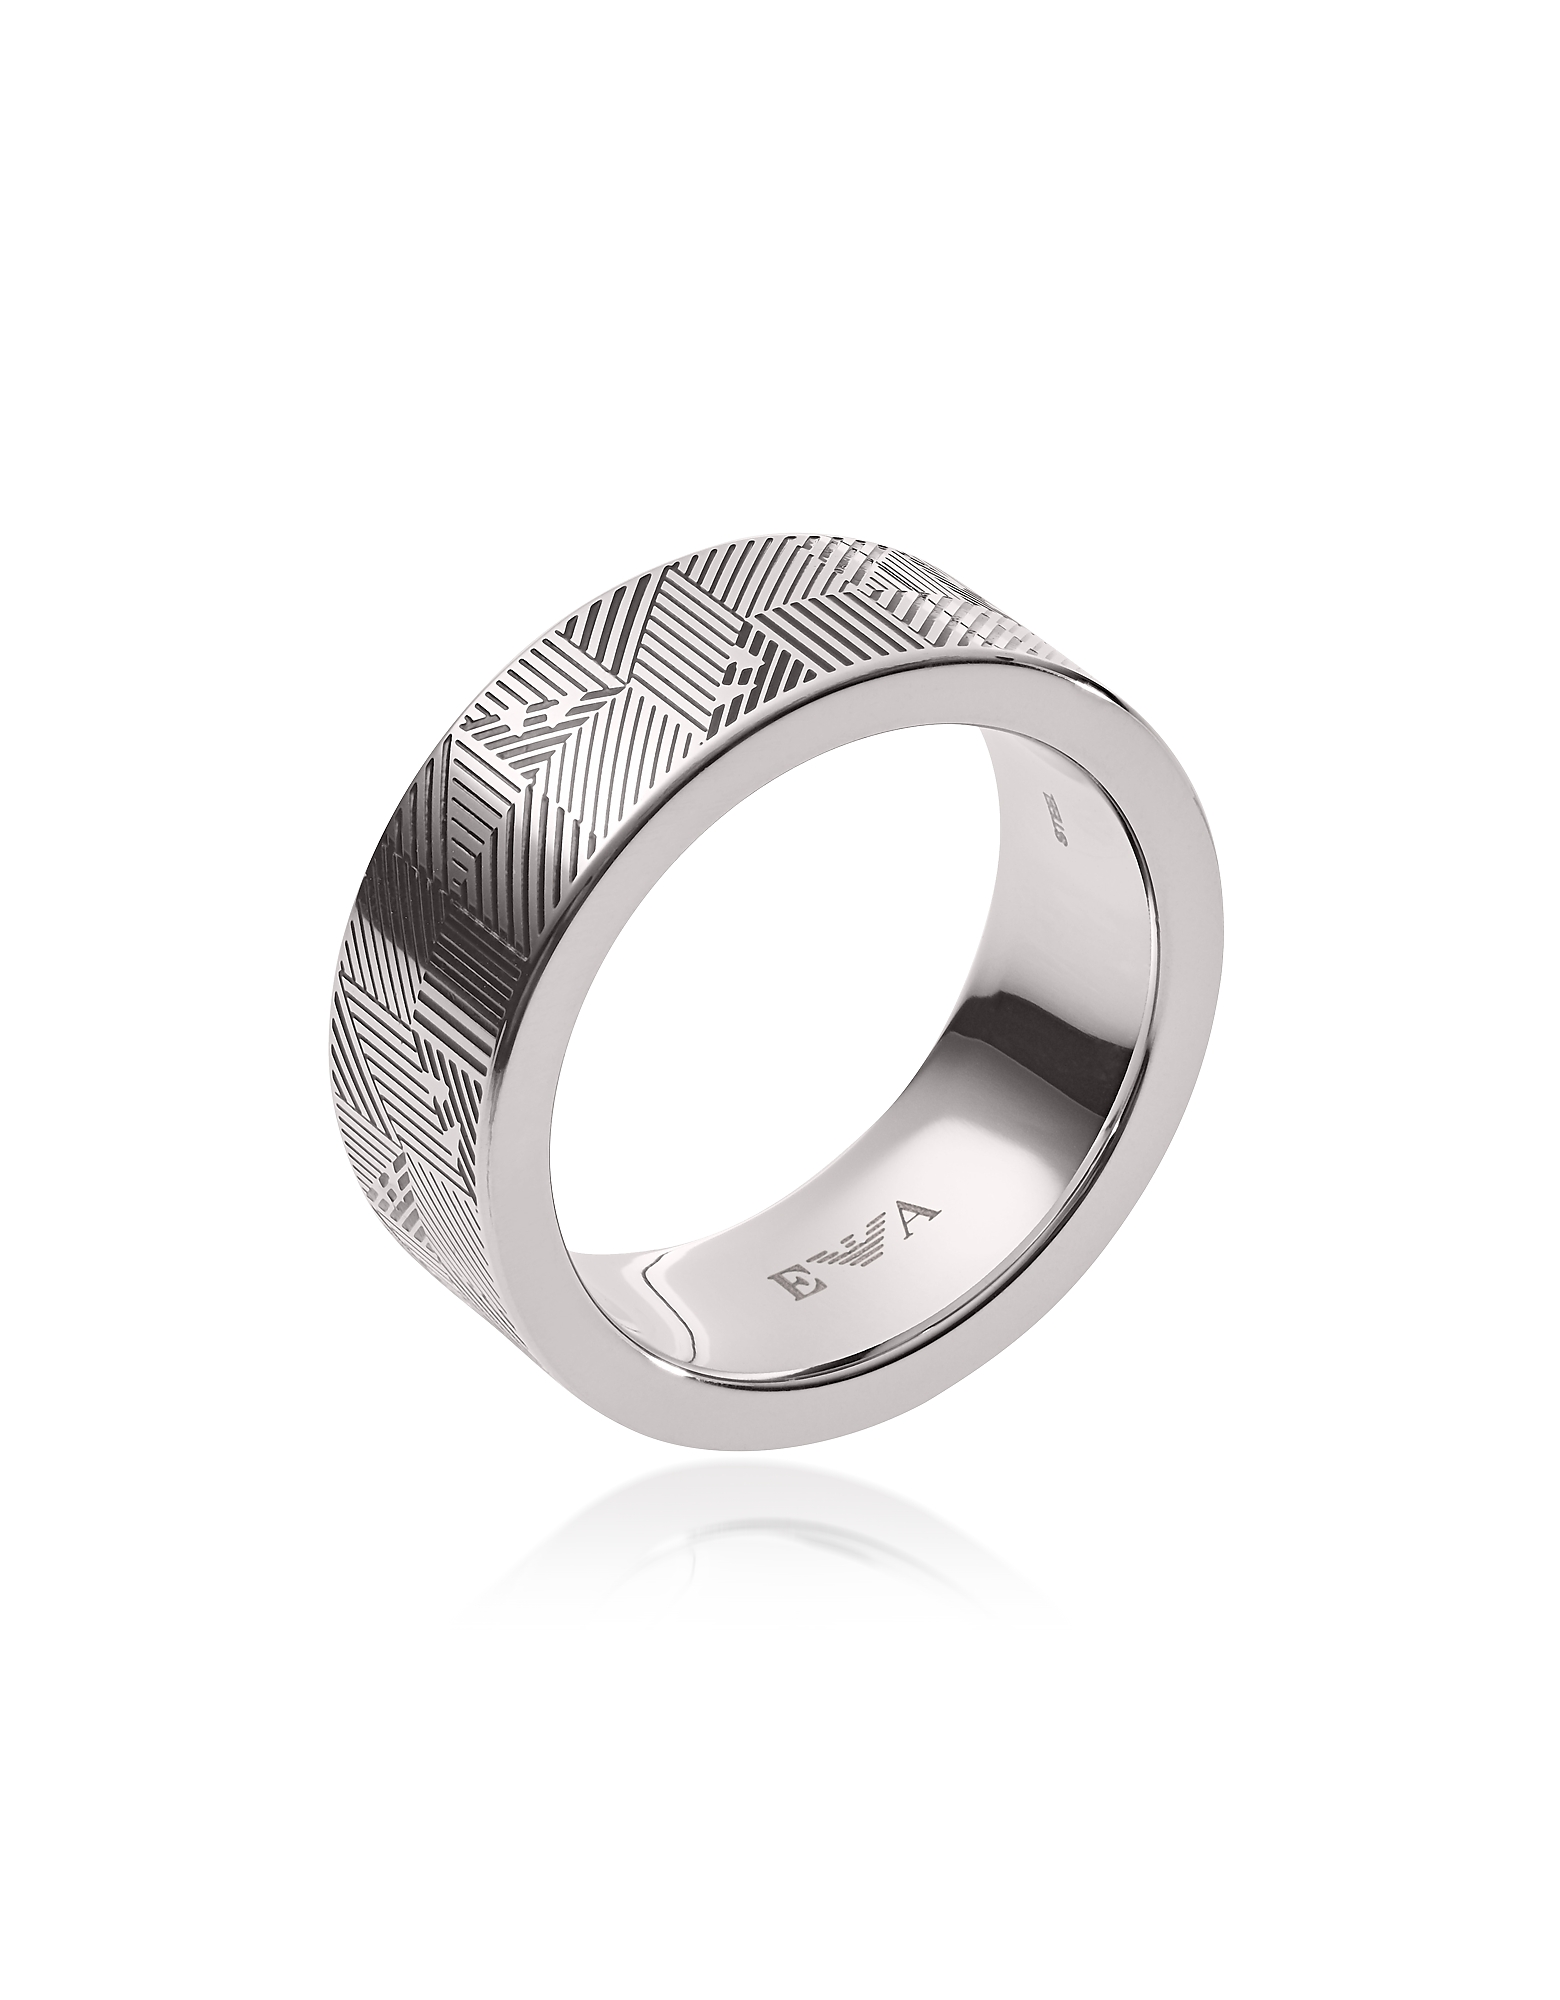 Stainless Steel Geometric Eagle Men's Ring